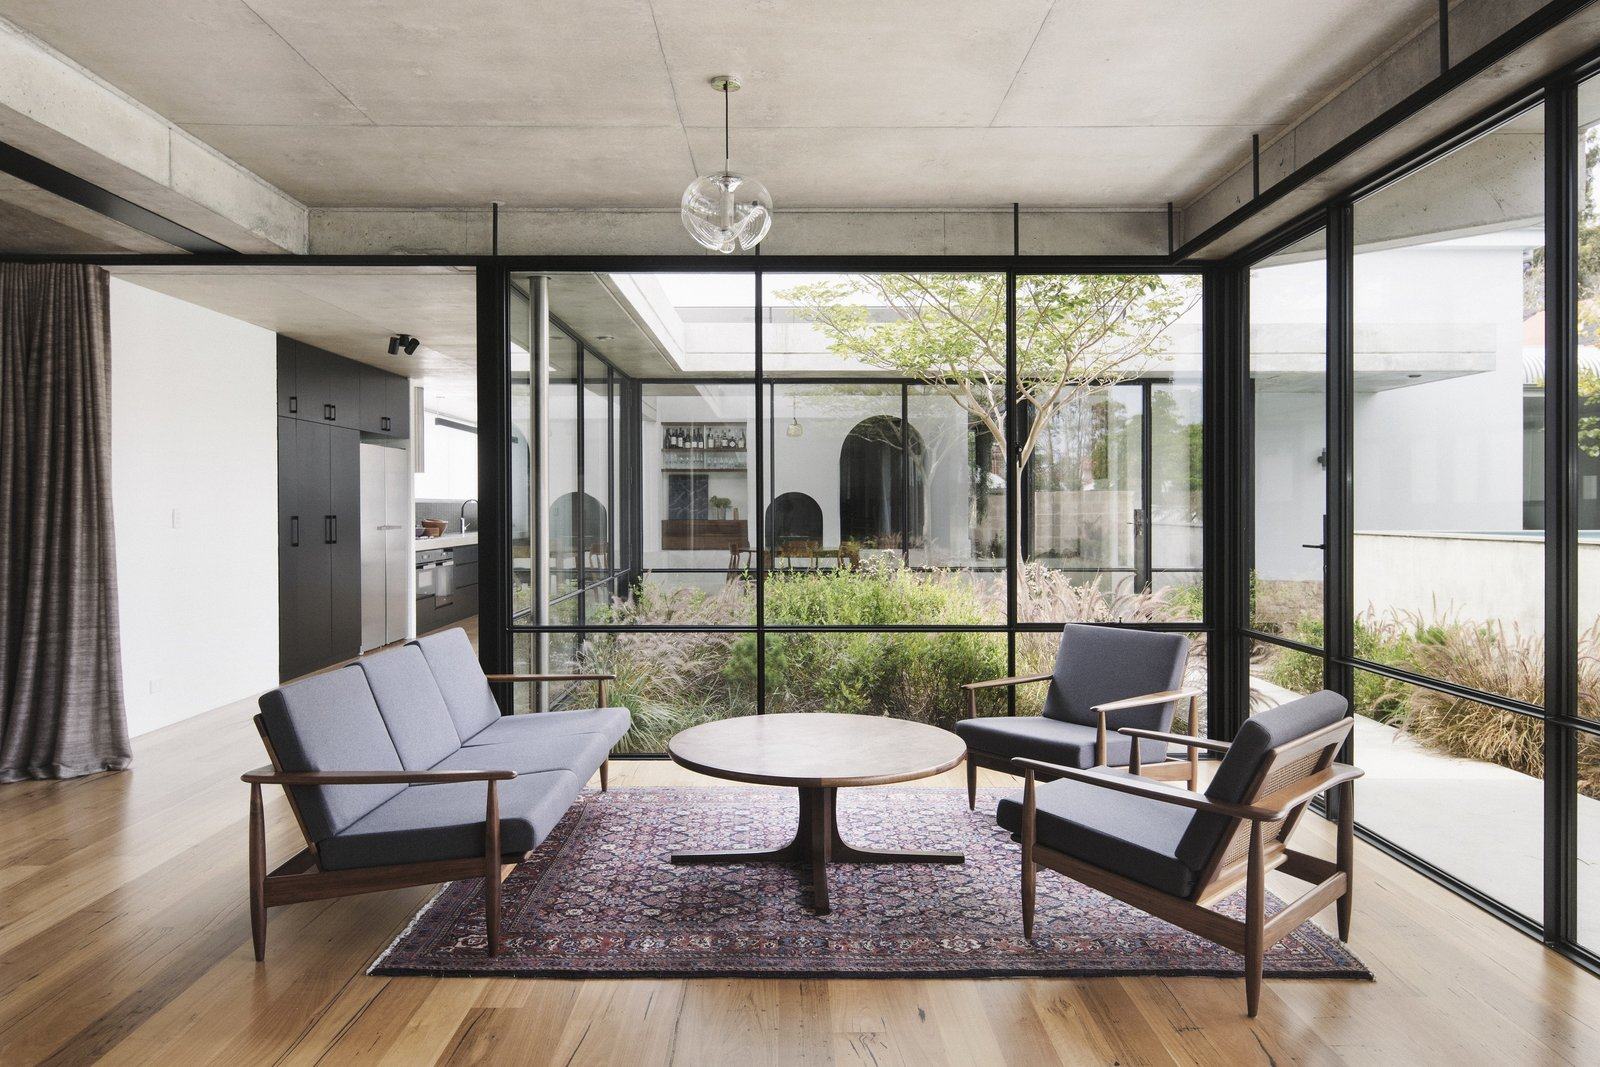 Two Sisters Work Together to Revive and Expand a Turn-of-the-Century Home in Perth